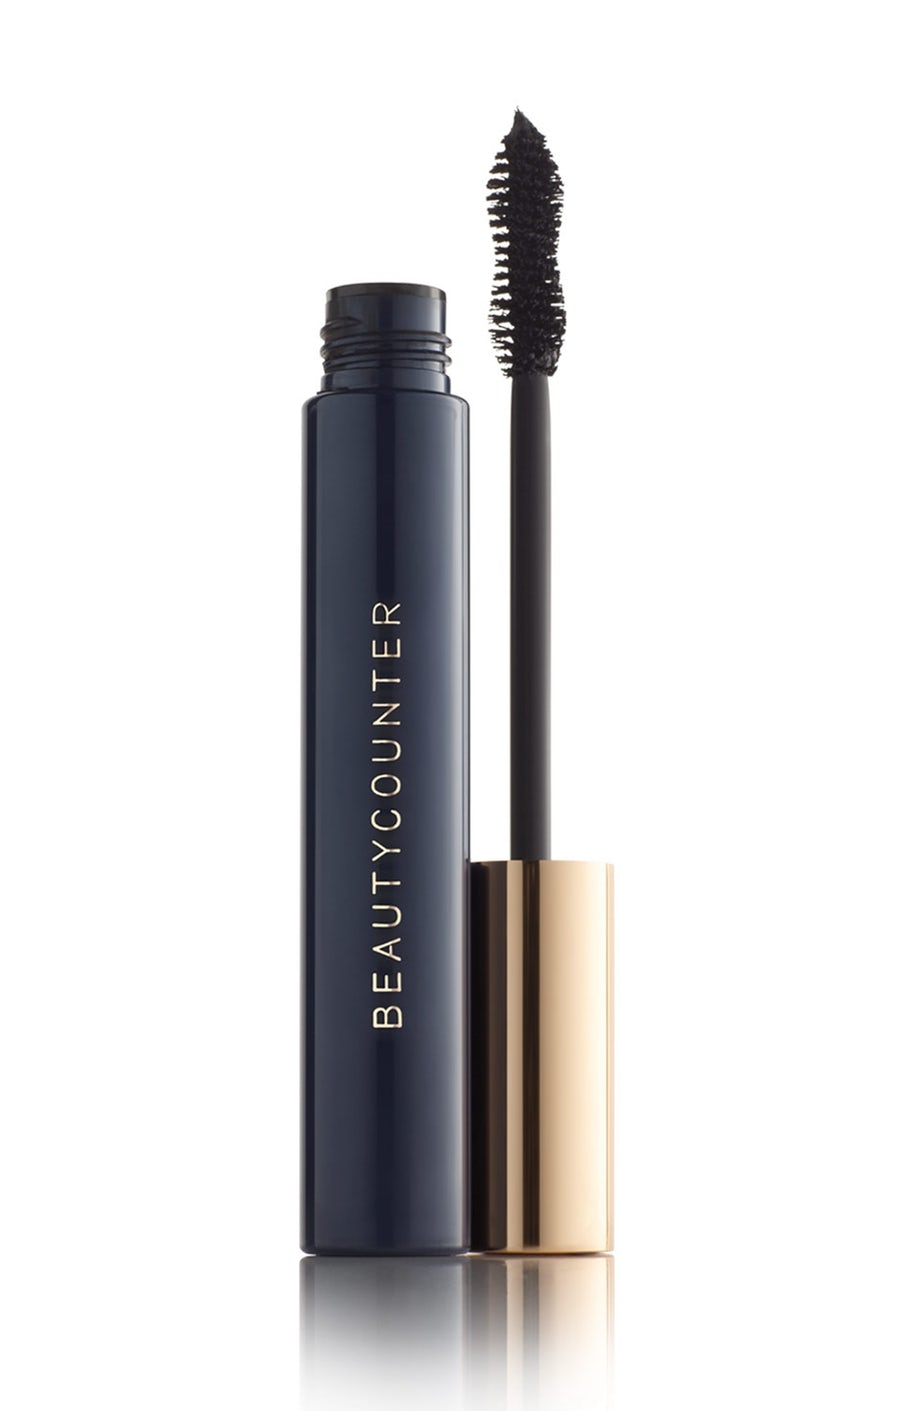 VOLUMIZING MASCARA - This volumizing mascara isn't really my favorite, but it's what I'm using now because it's my only non-toxic mascara. Don't get me wrong, this is a good mascara, it just doesn't perform as well as my old favorites. This makes my lashes look good with 2-3 coats. This has a thick and dry formula which I personally love, but if you are the minority, you probably won't like this.CONS: Might be a little too dry making application a little bit challenging. Can flake a little when applying.